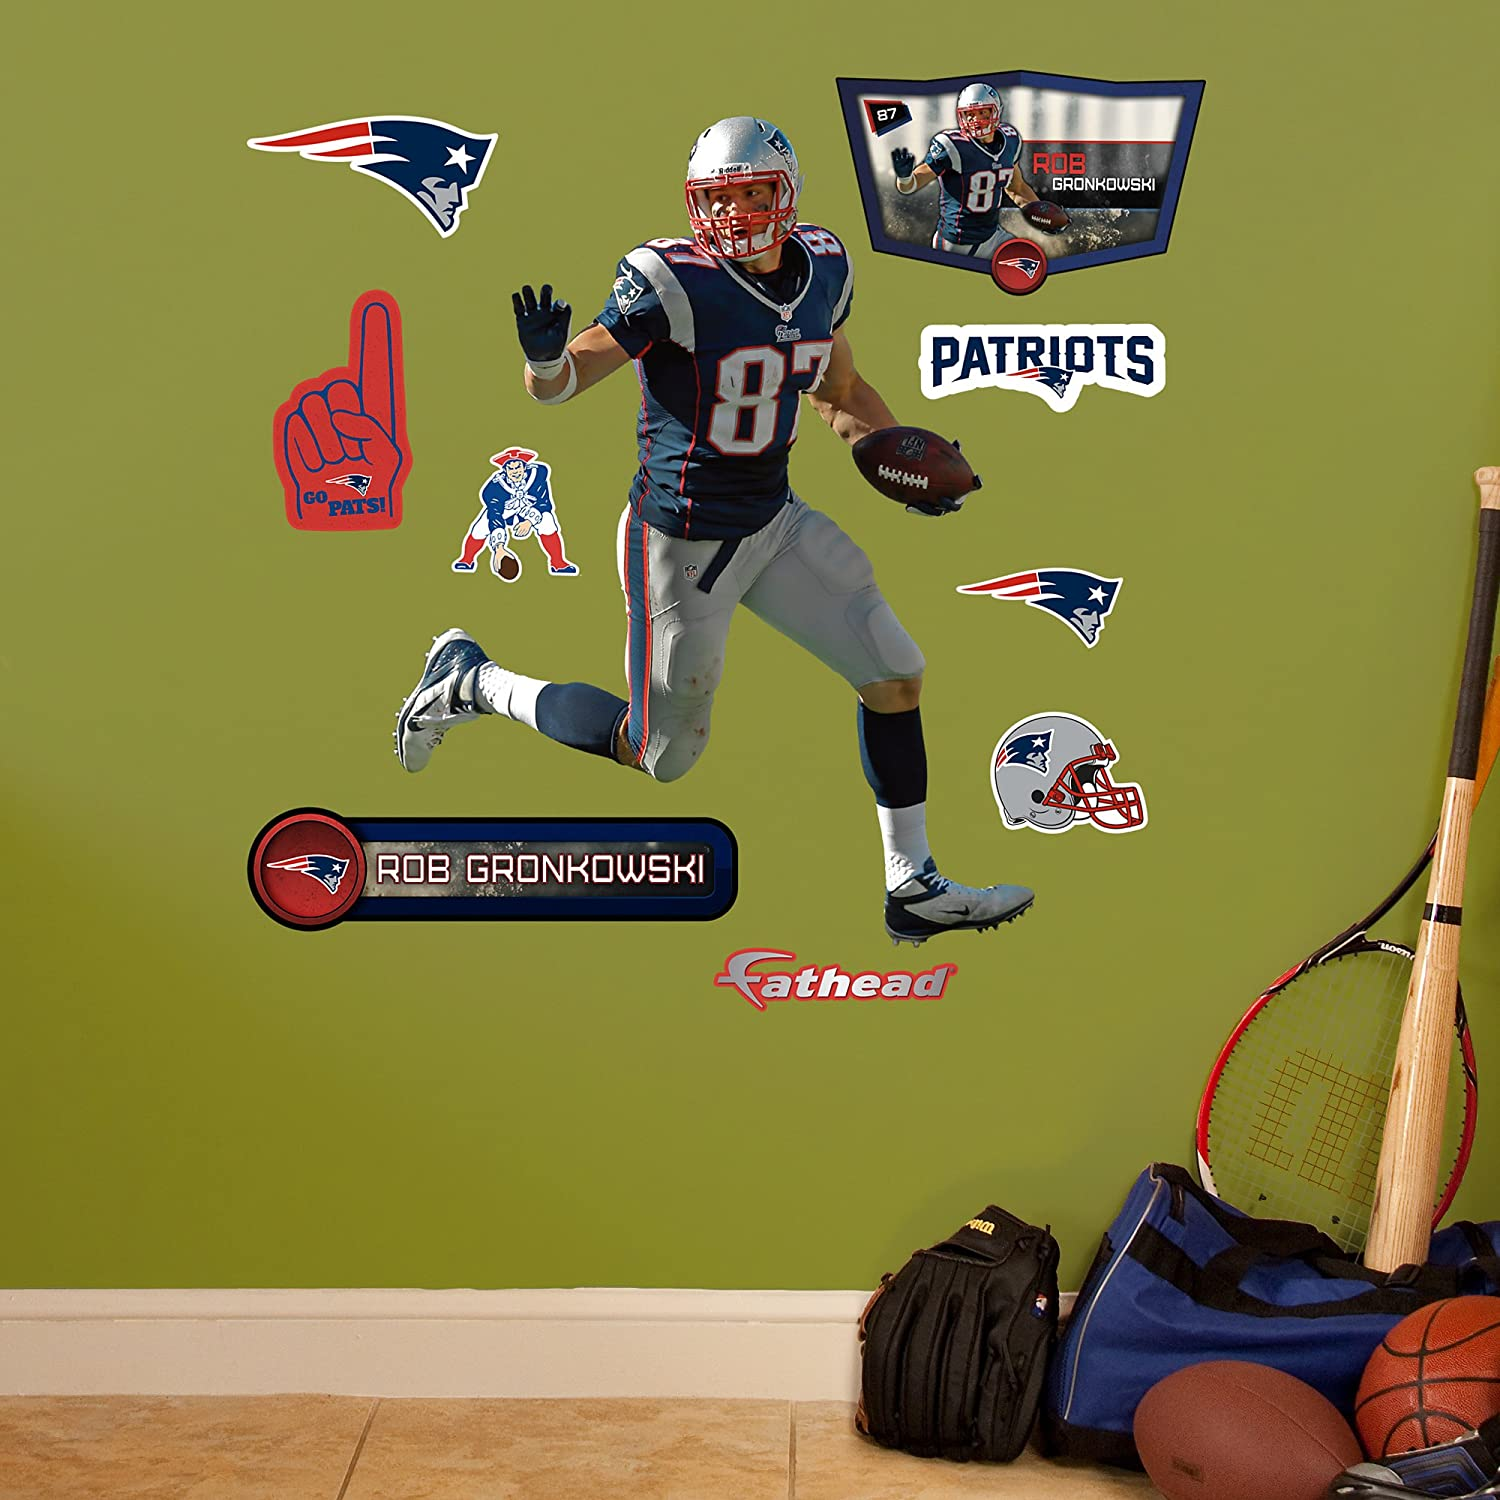 Amazon.com : NFL New England Patriots Rob Gronkowski Fathead Wall Decal,  Junior : Sports U0026 Outdoors